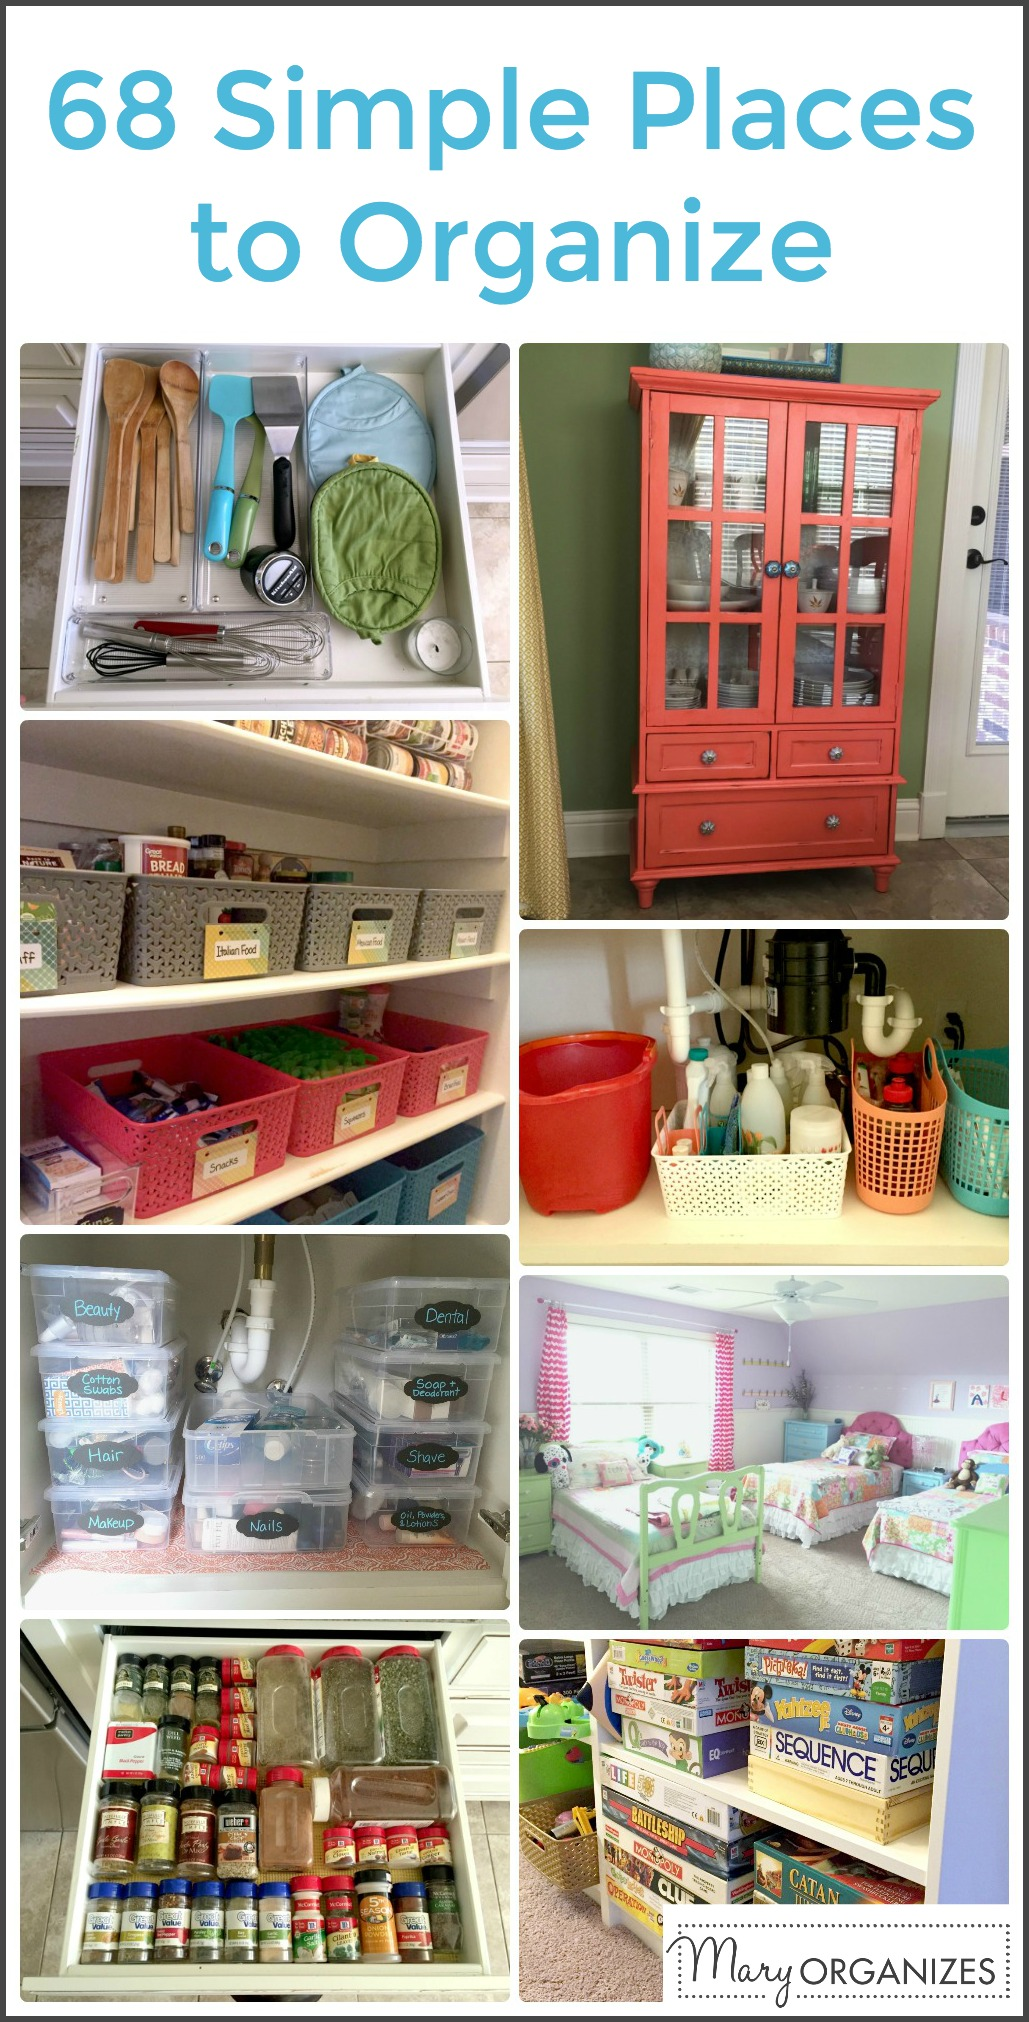 68 Simple Places To Organize -v